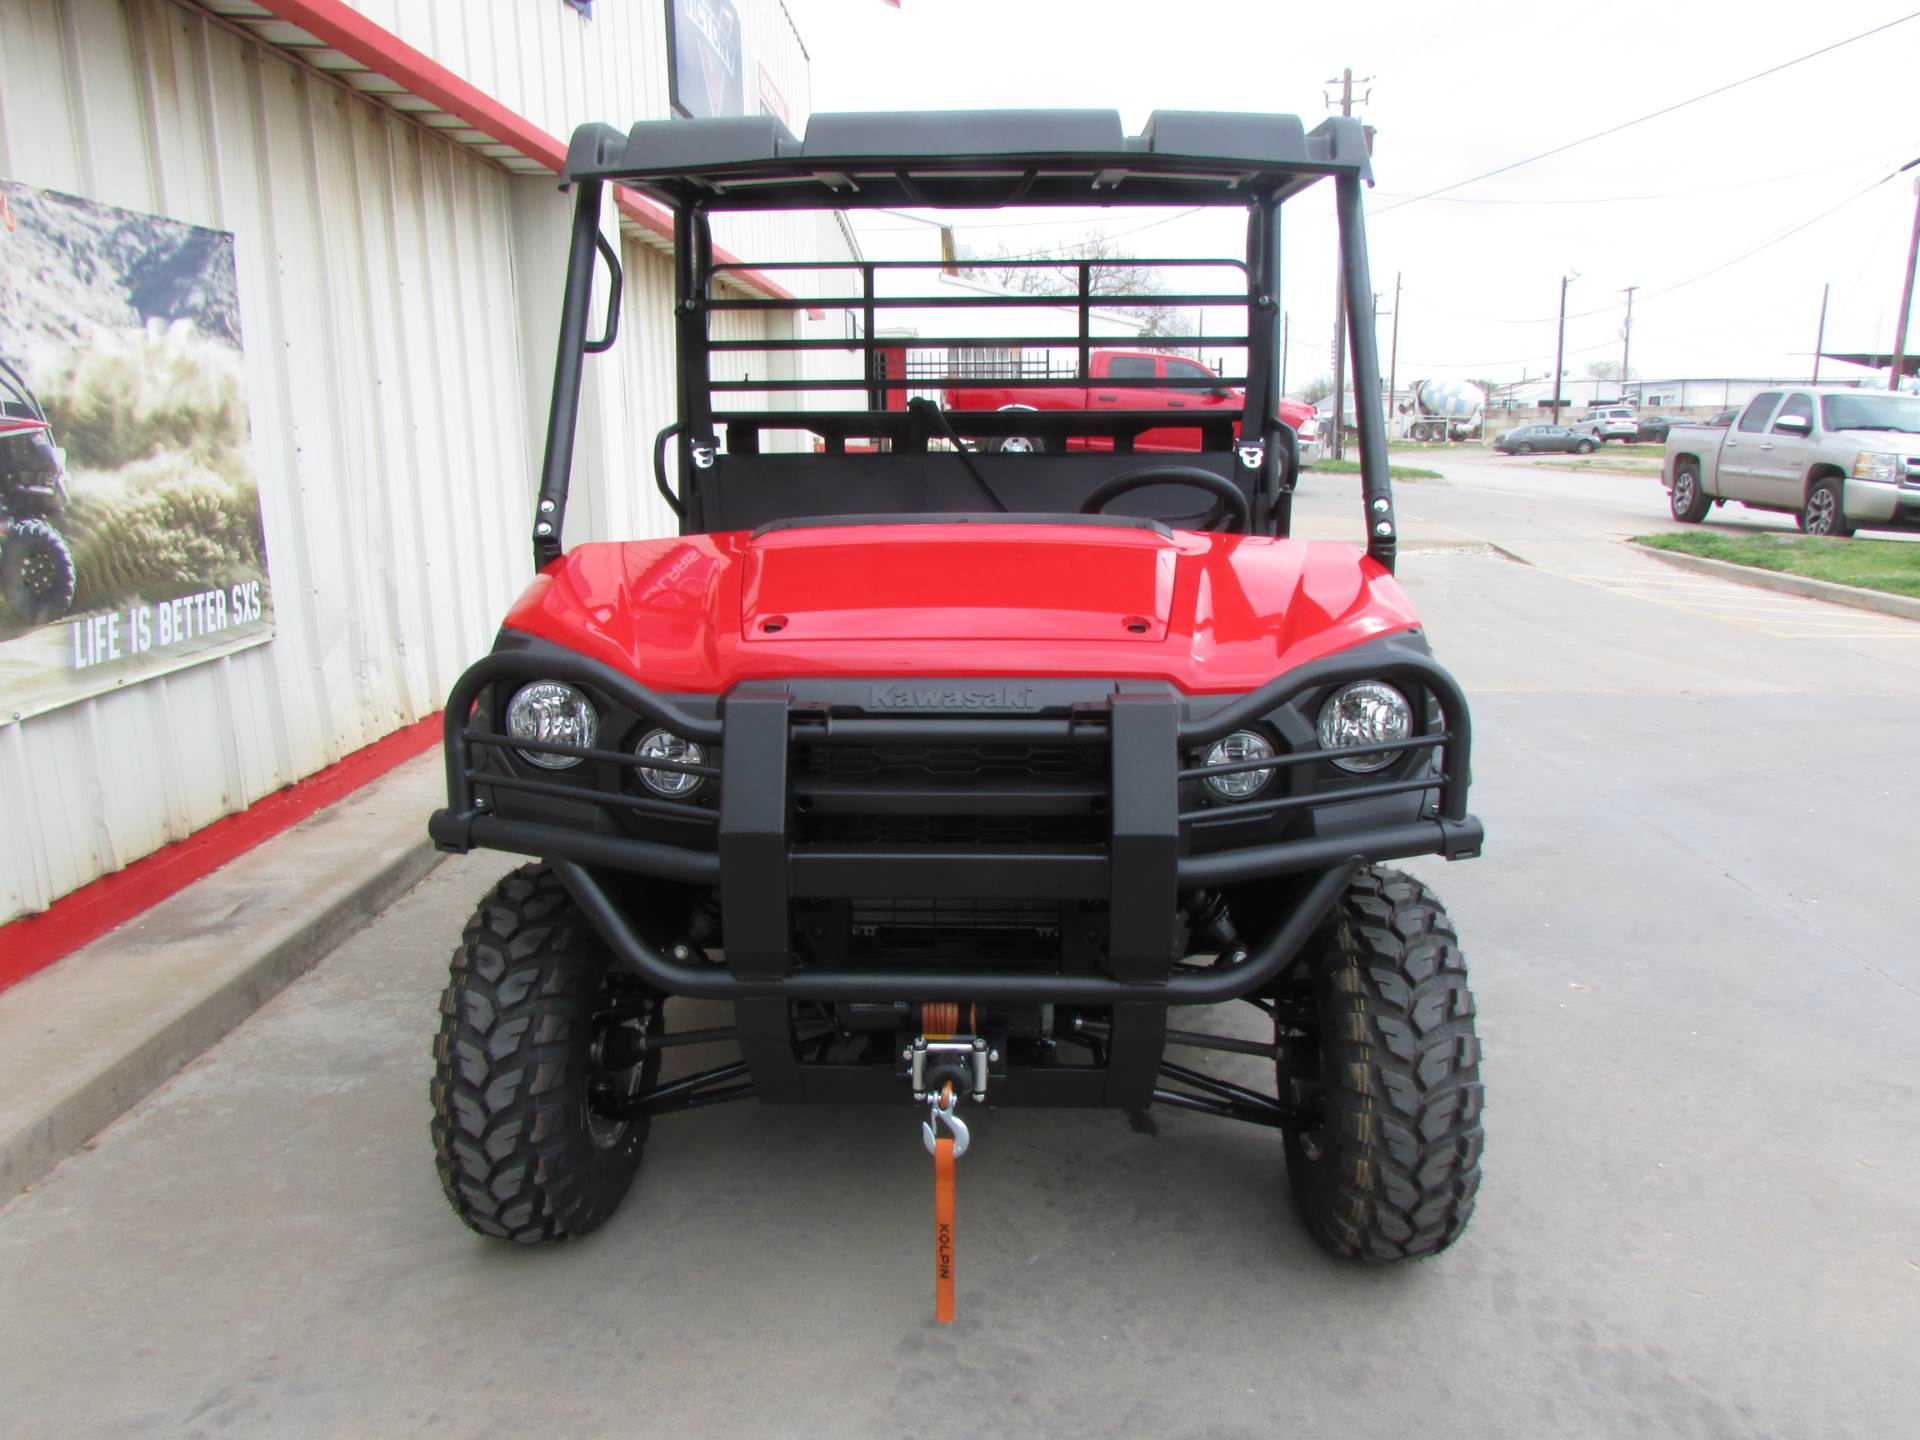 2019 Kawasaki Mule PRO-FX EPS LE in Wichita Falls, Texas - Photo 4